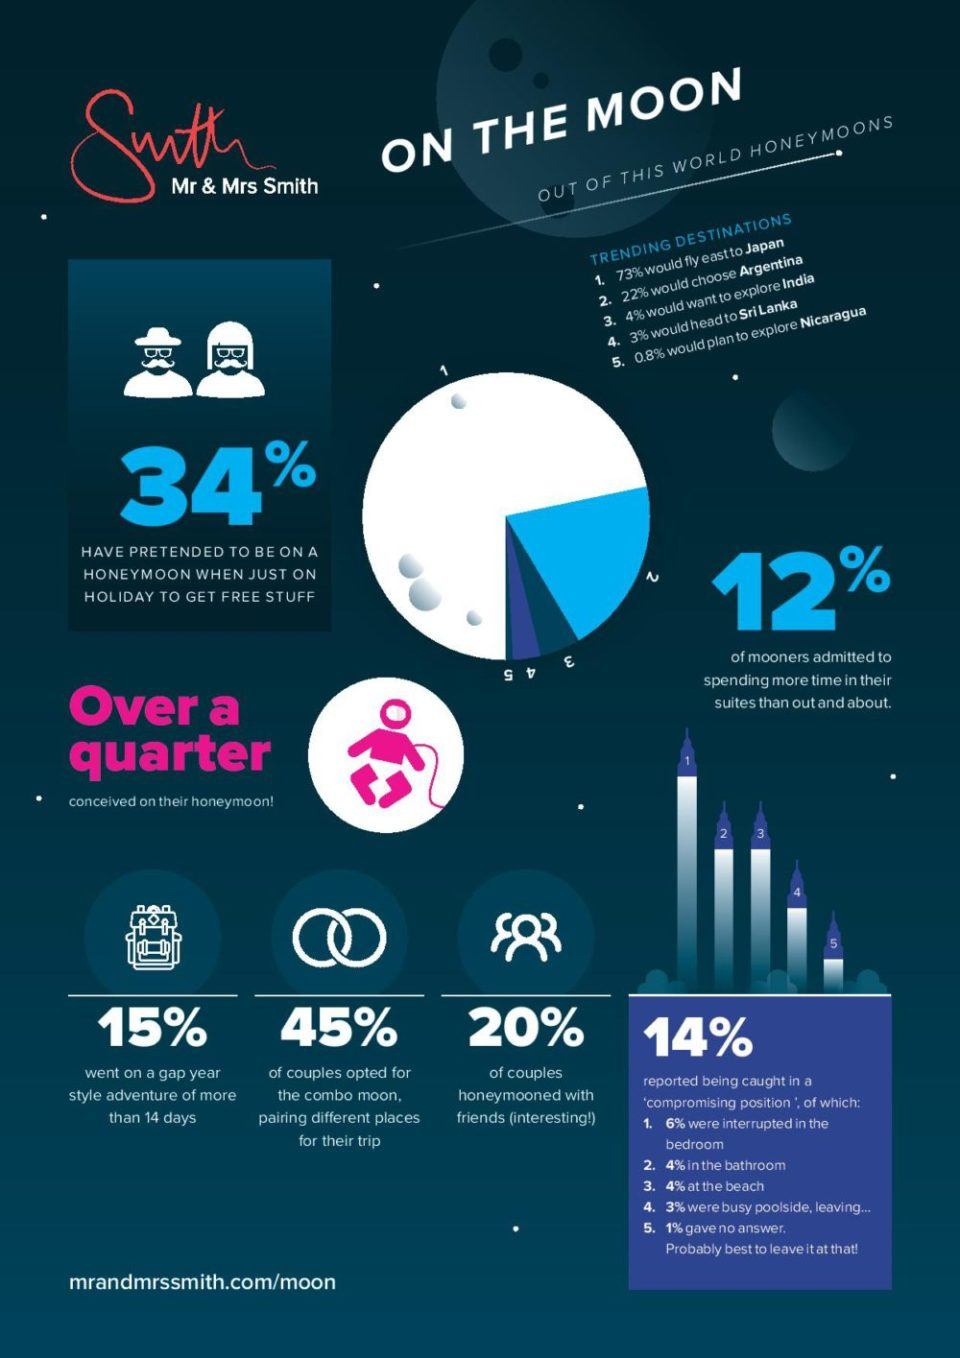 mms-on-the-moon-infographic-singapore